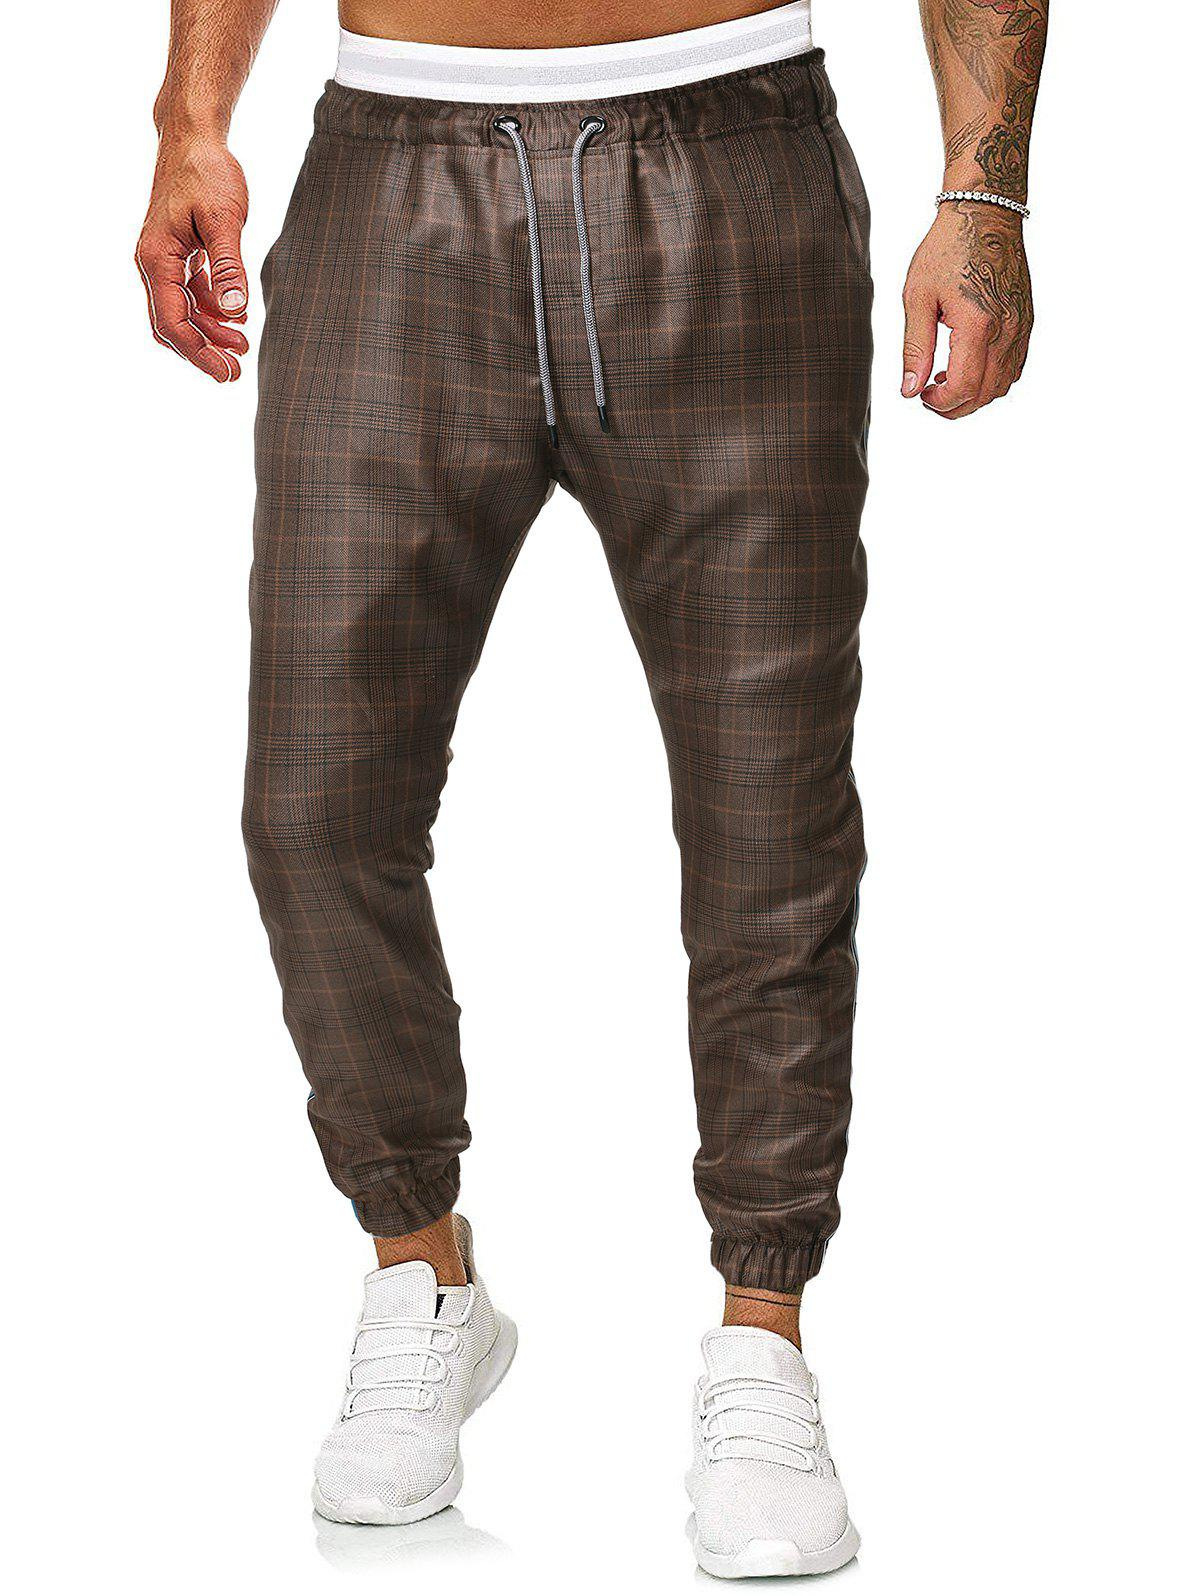 Pantalon de Jogging Motif à Carreaux à Cordon café 2XL